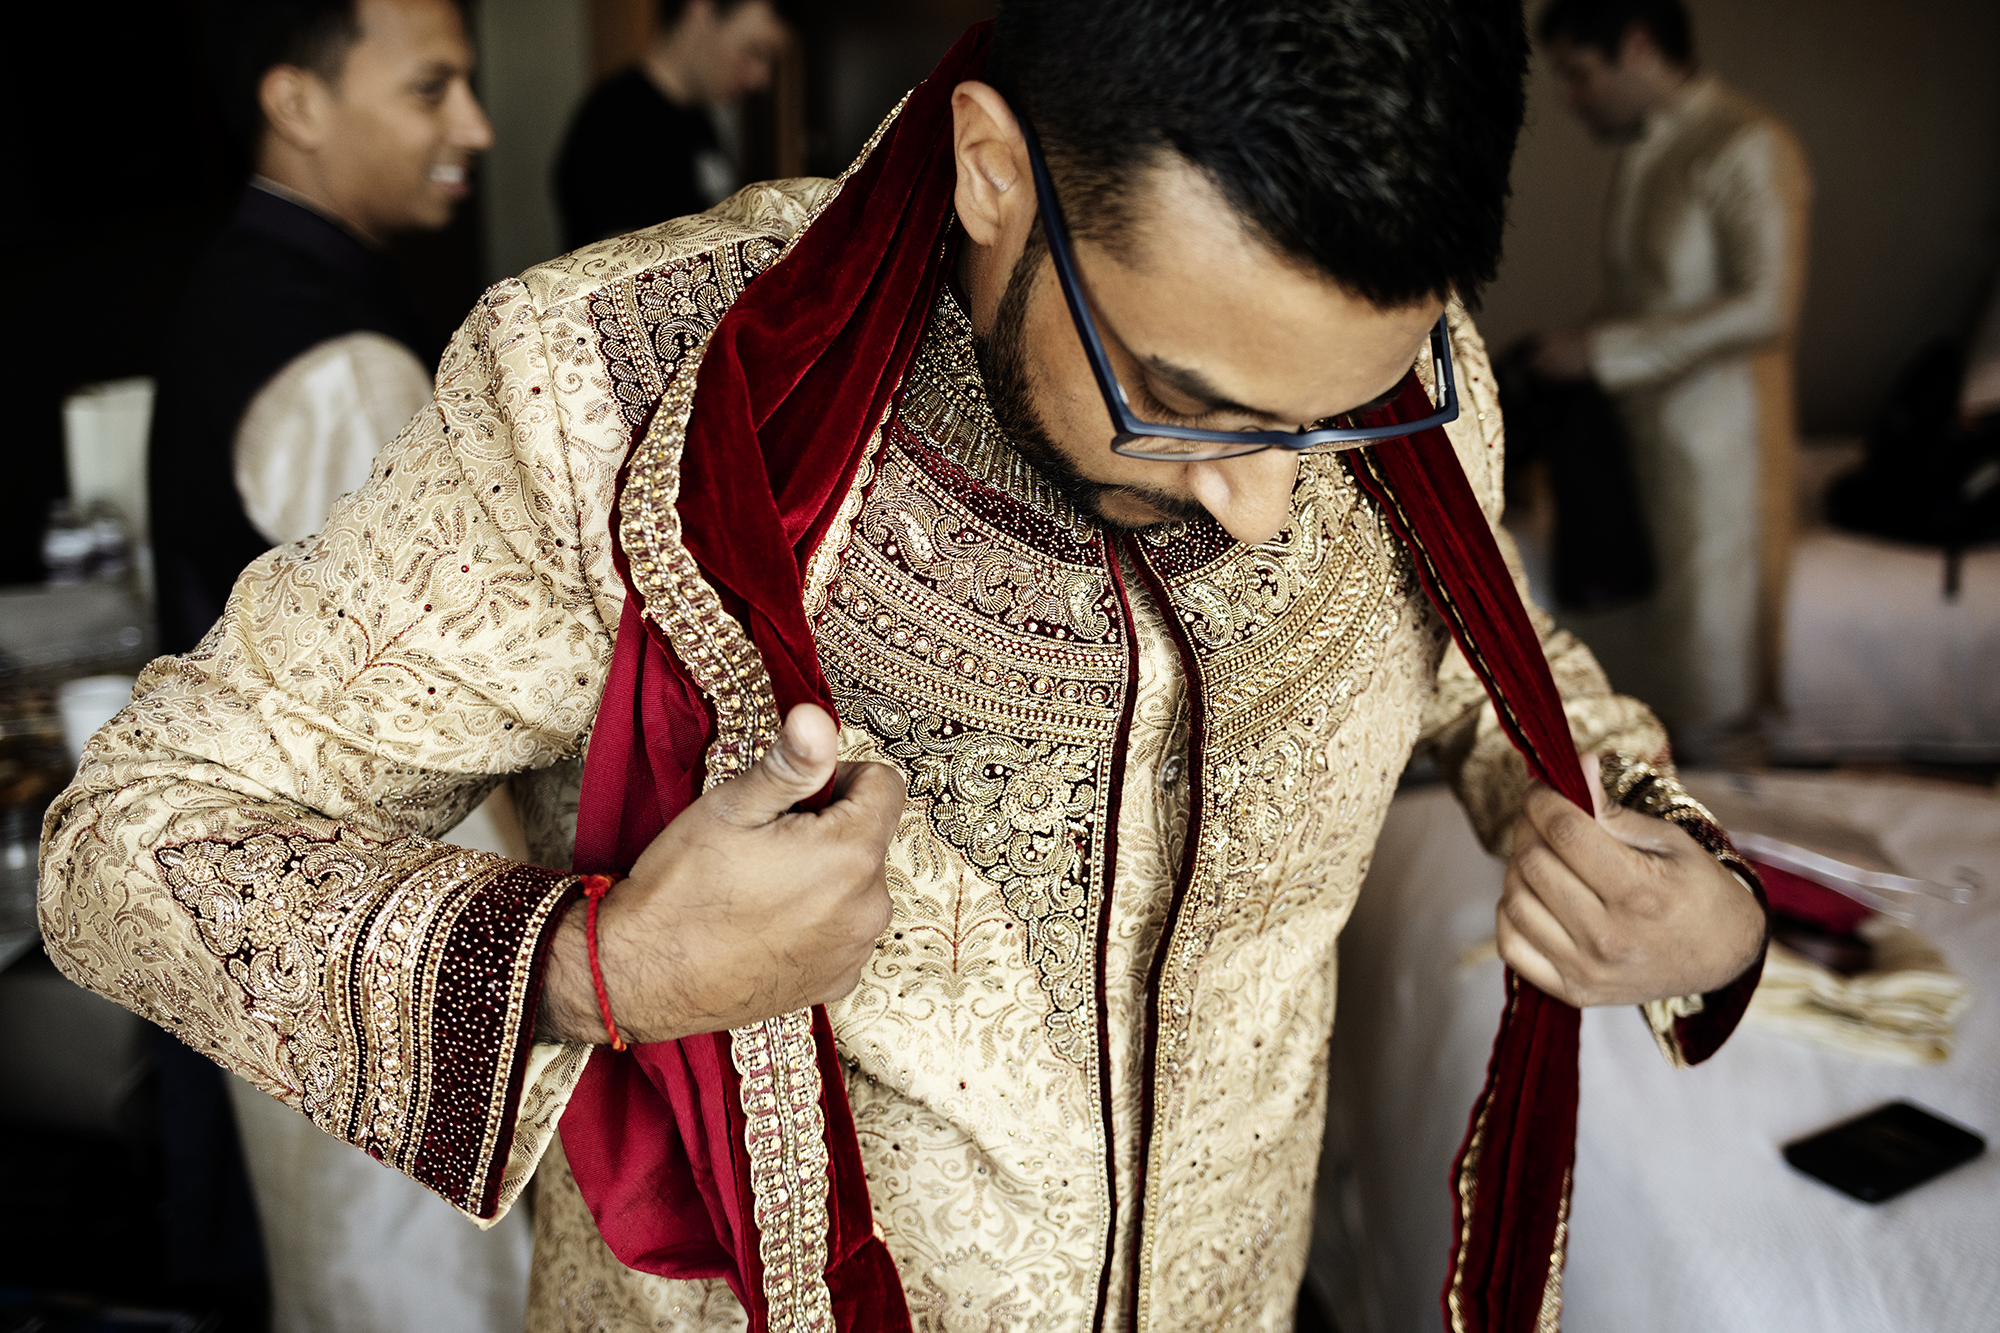 Groom's Indian Wedding Attire | Minneapolis Wedding Photos | Photography by Photogen Inc. | Eliesa Johnson | Luxury Wedding Photography Based in Minnesota